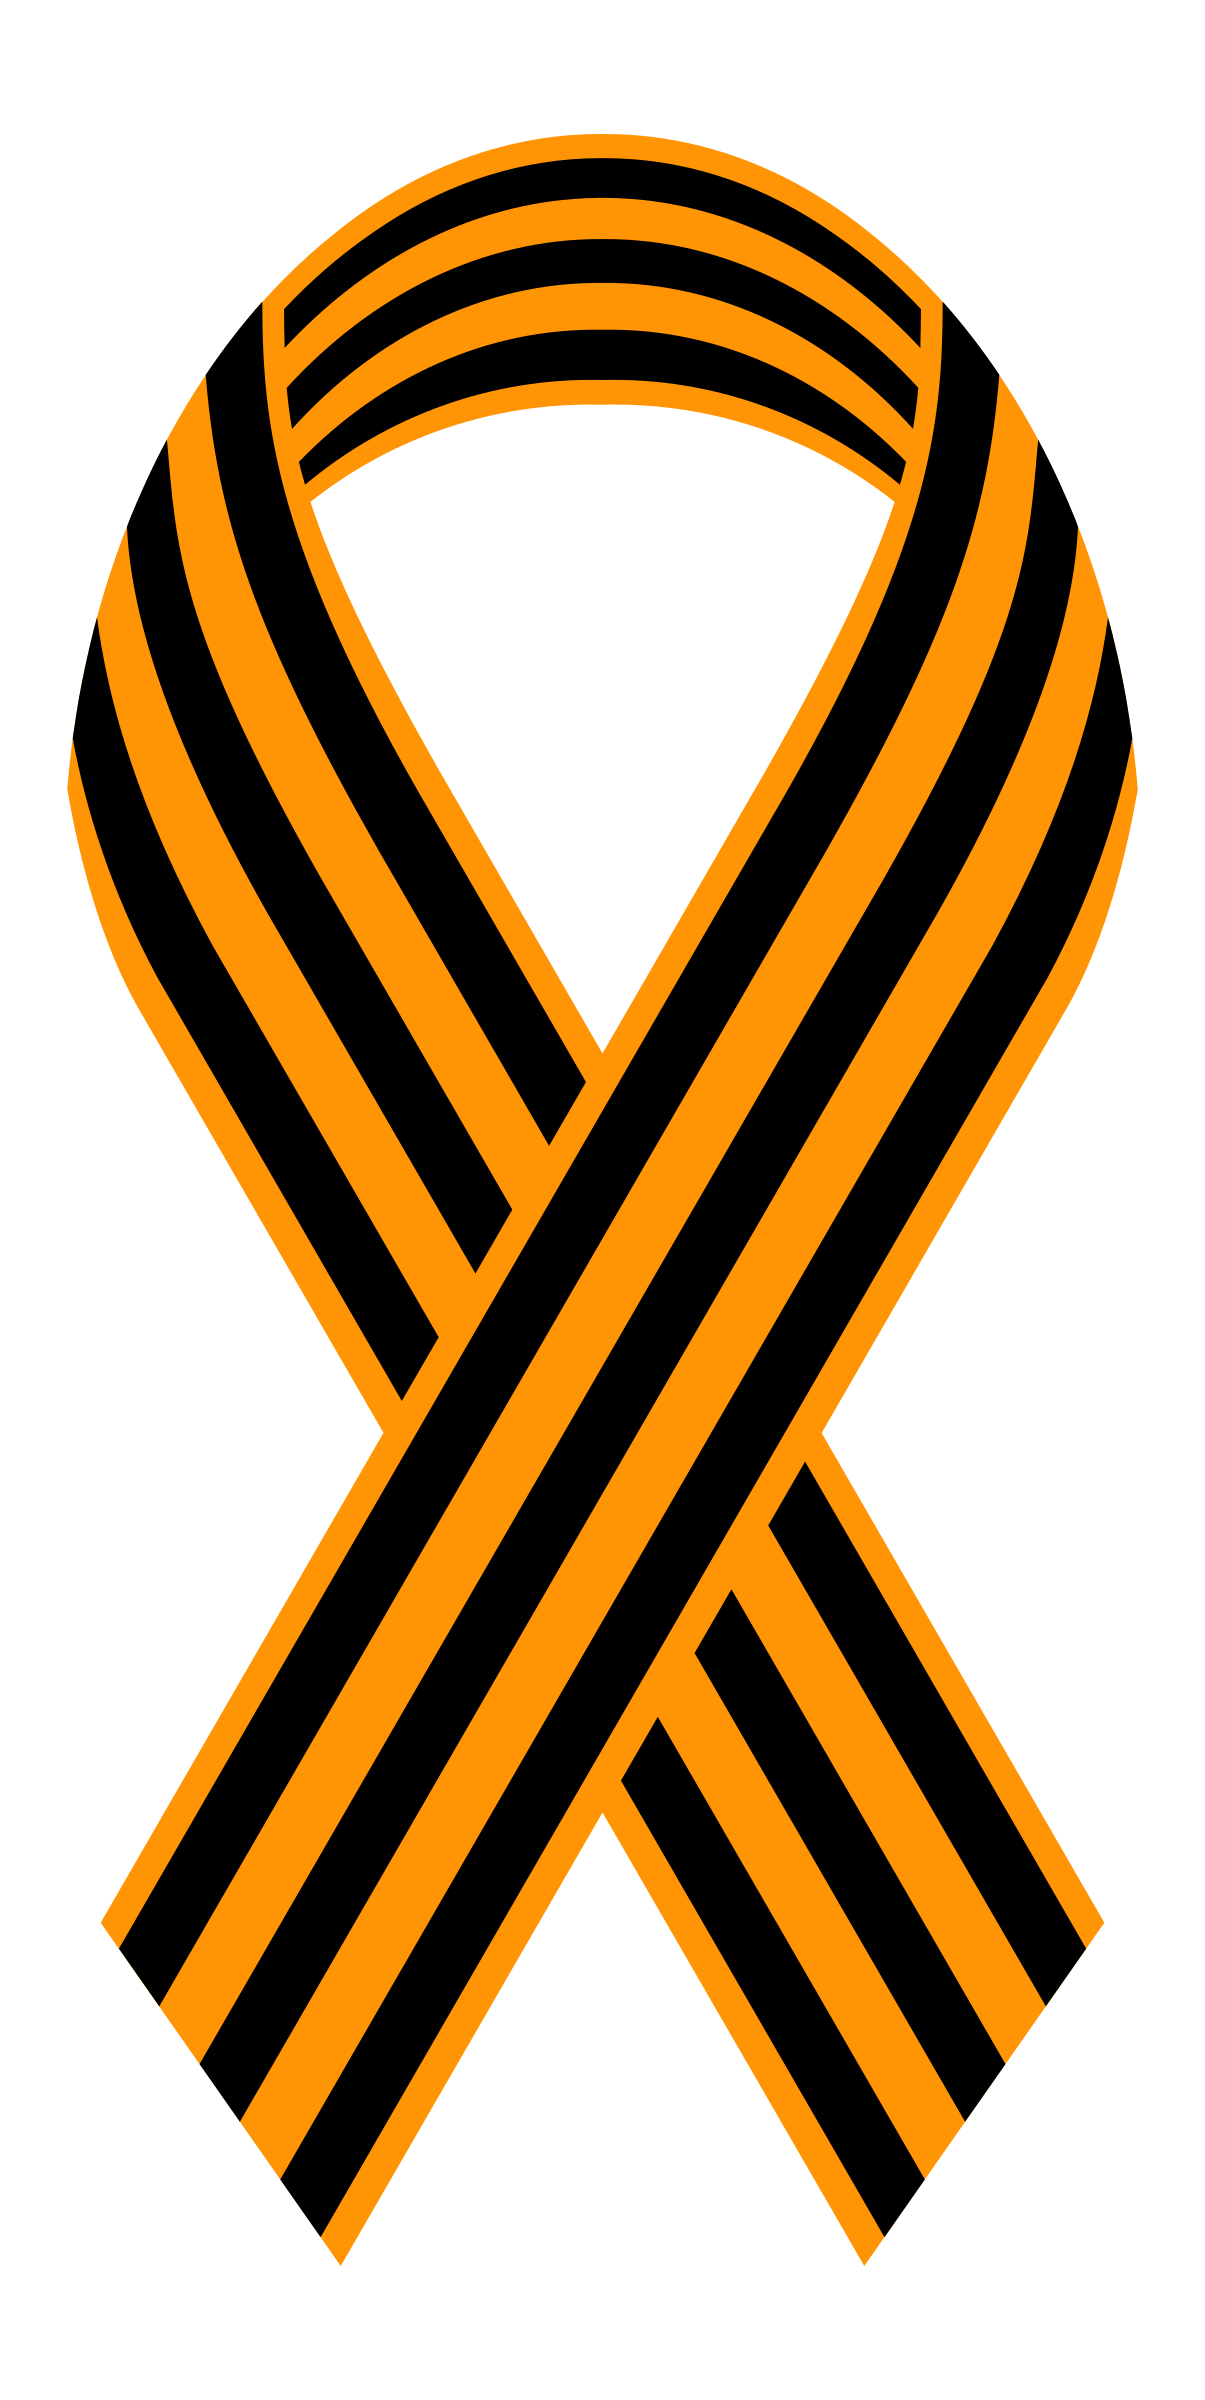 Ribbon of Saint George by worker